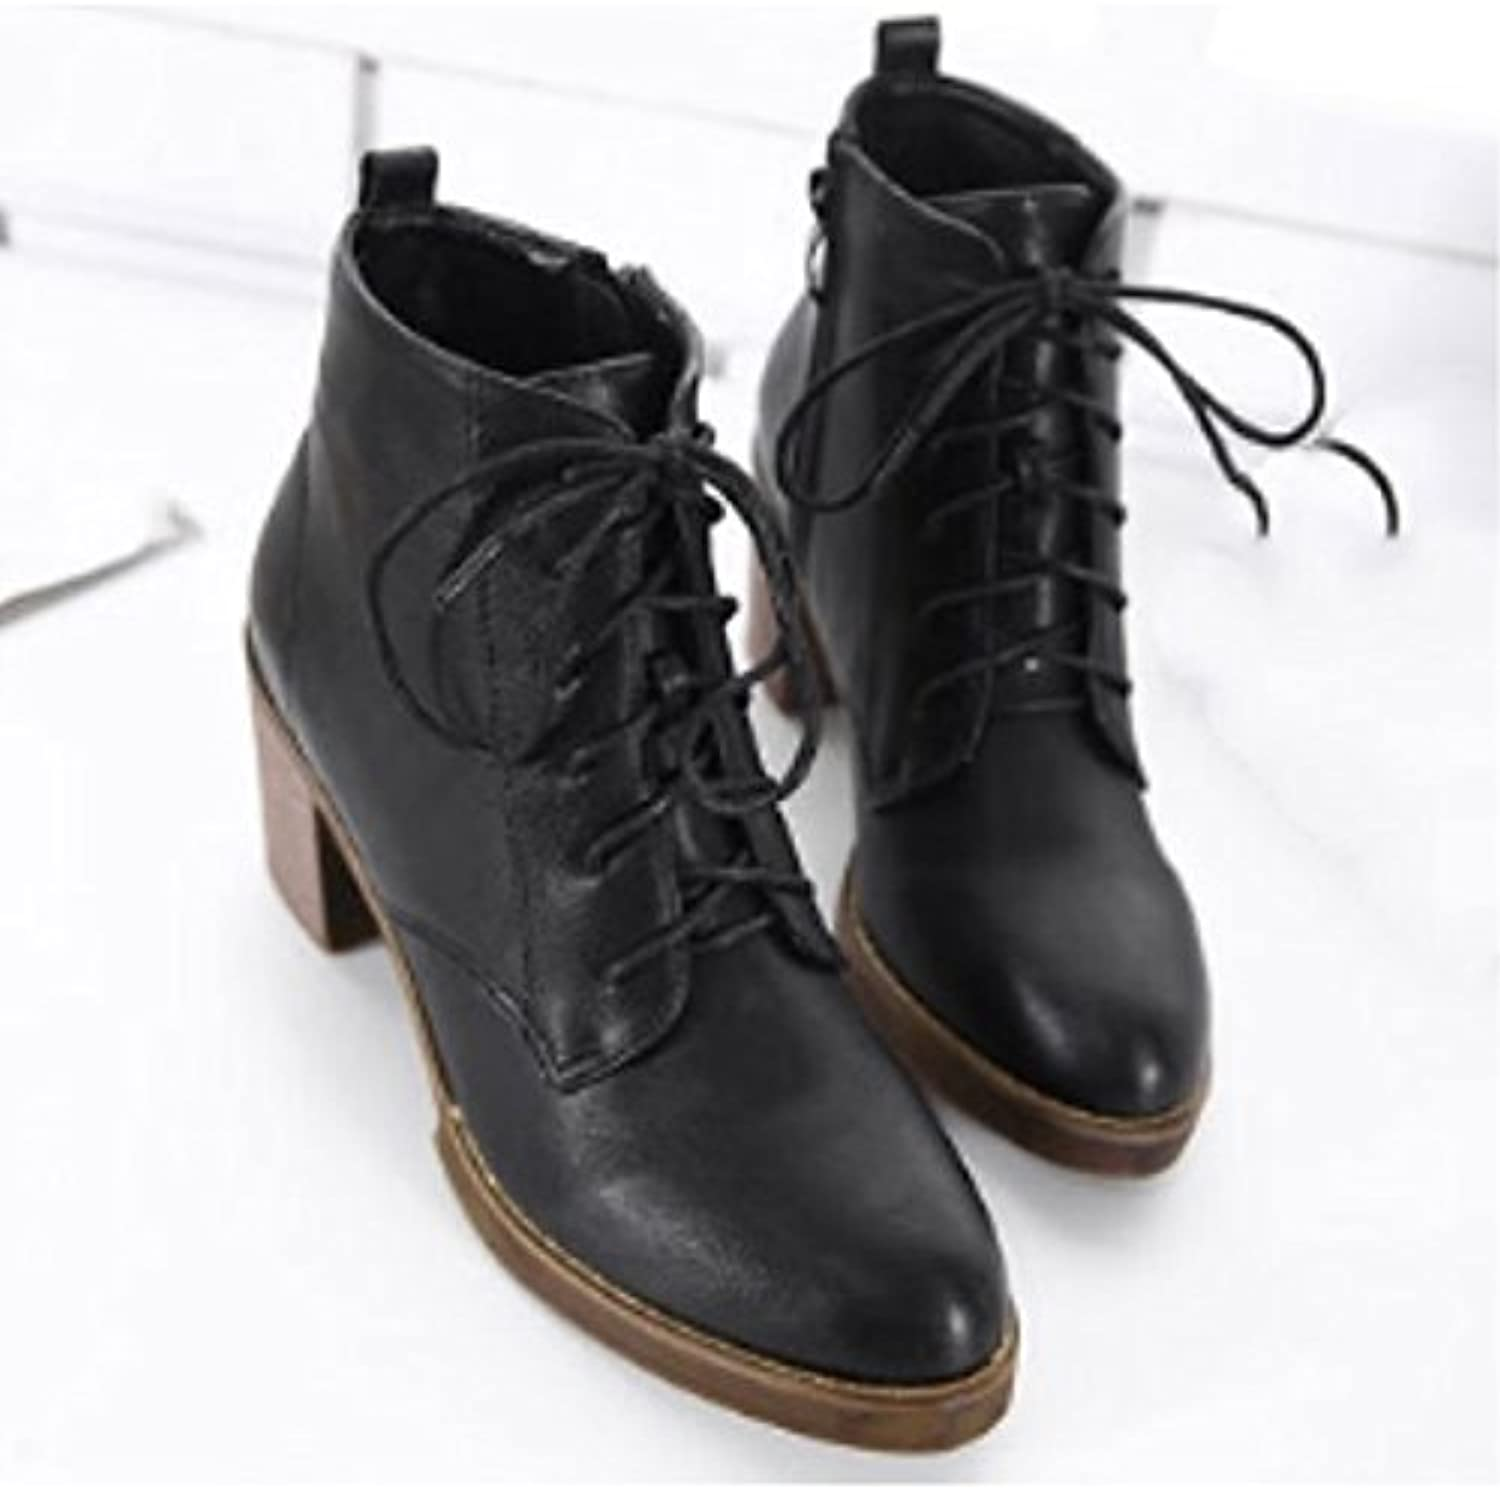 HSXZ Women's shoes PU Winter Combat Boots Boots Chunky Heel Round Toe Booties Ankle Boots for Casual Dark Brown Black